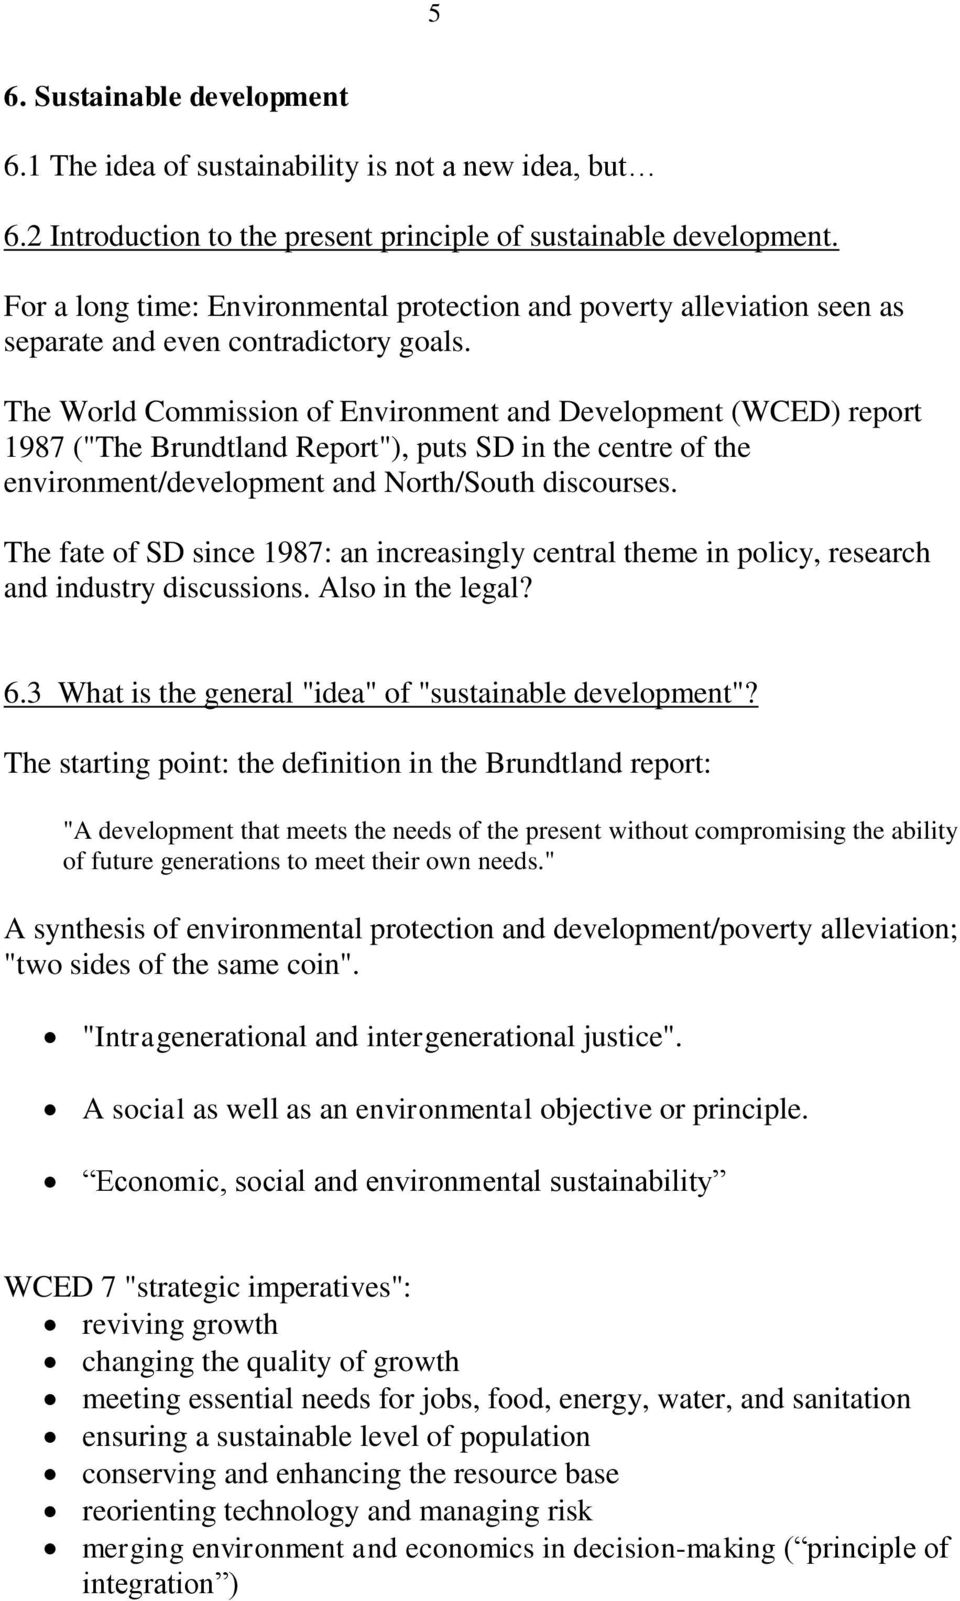 "The World Commission of Environment and Development (WCED) report 1987 (""The Brundtland Report""), puts SD in the centre of the environment/development and North/South discourses."